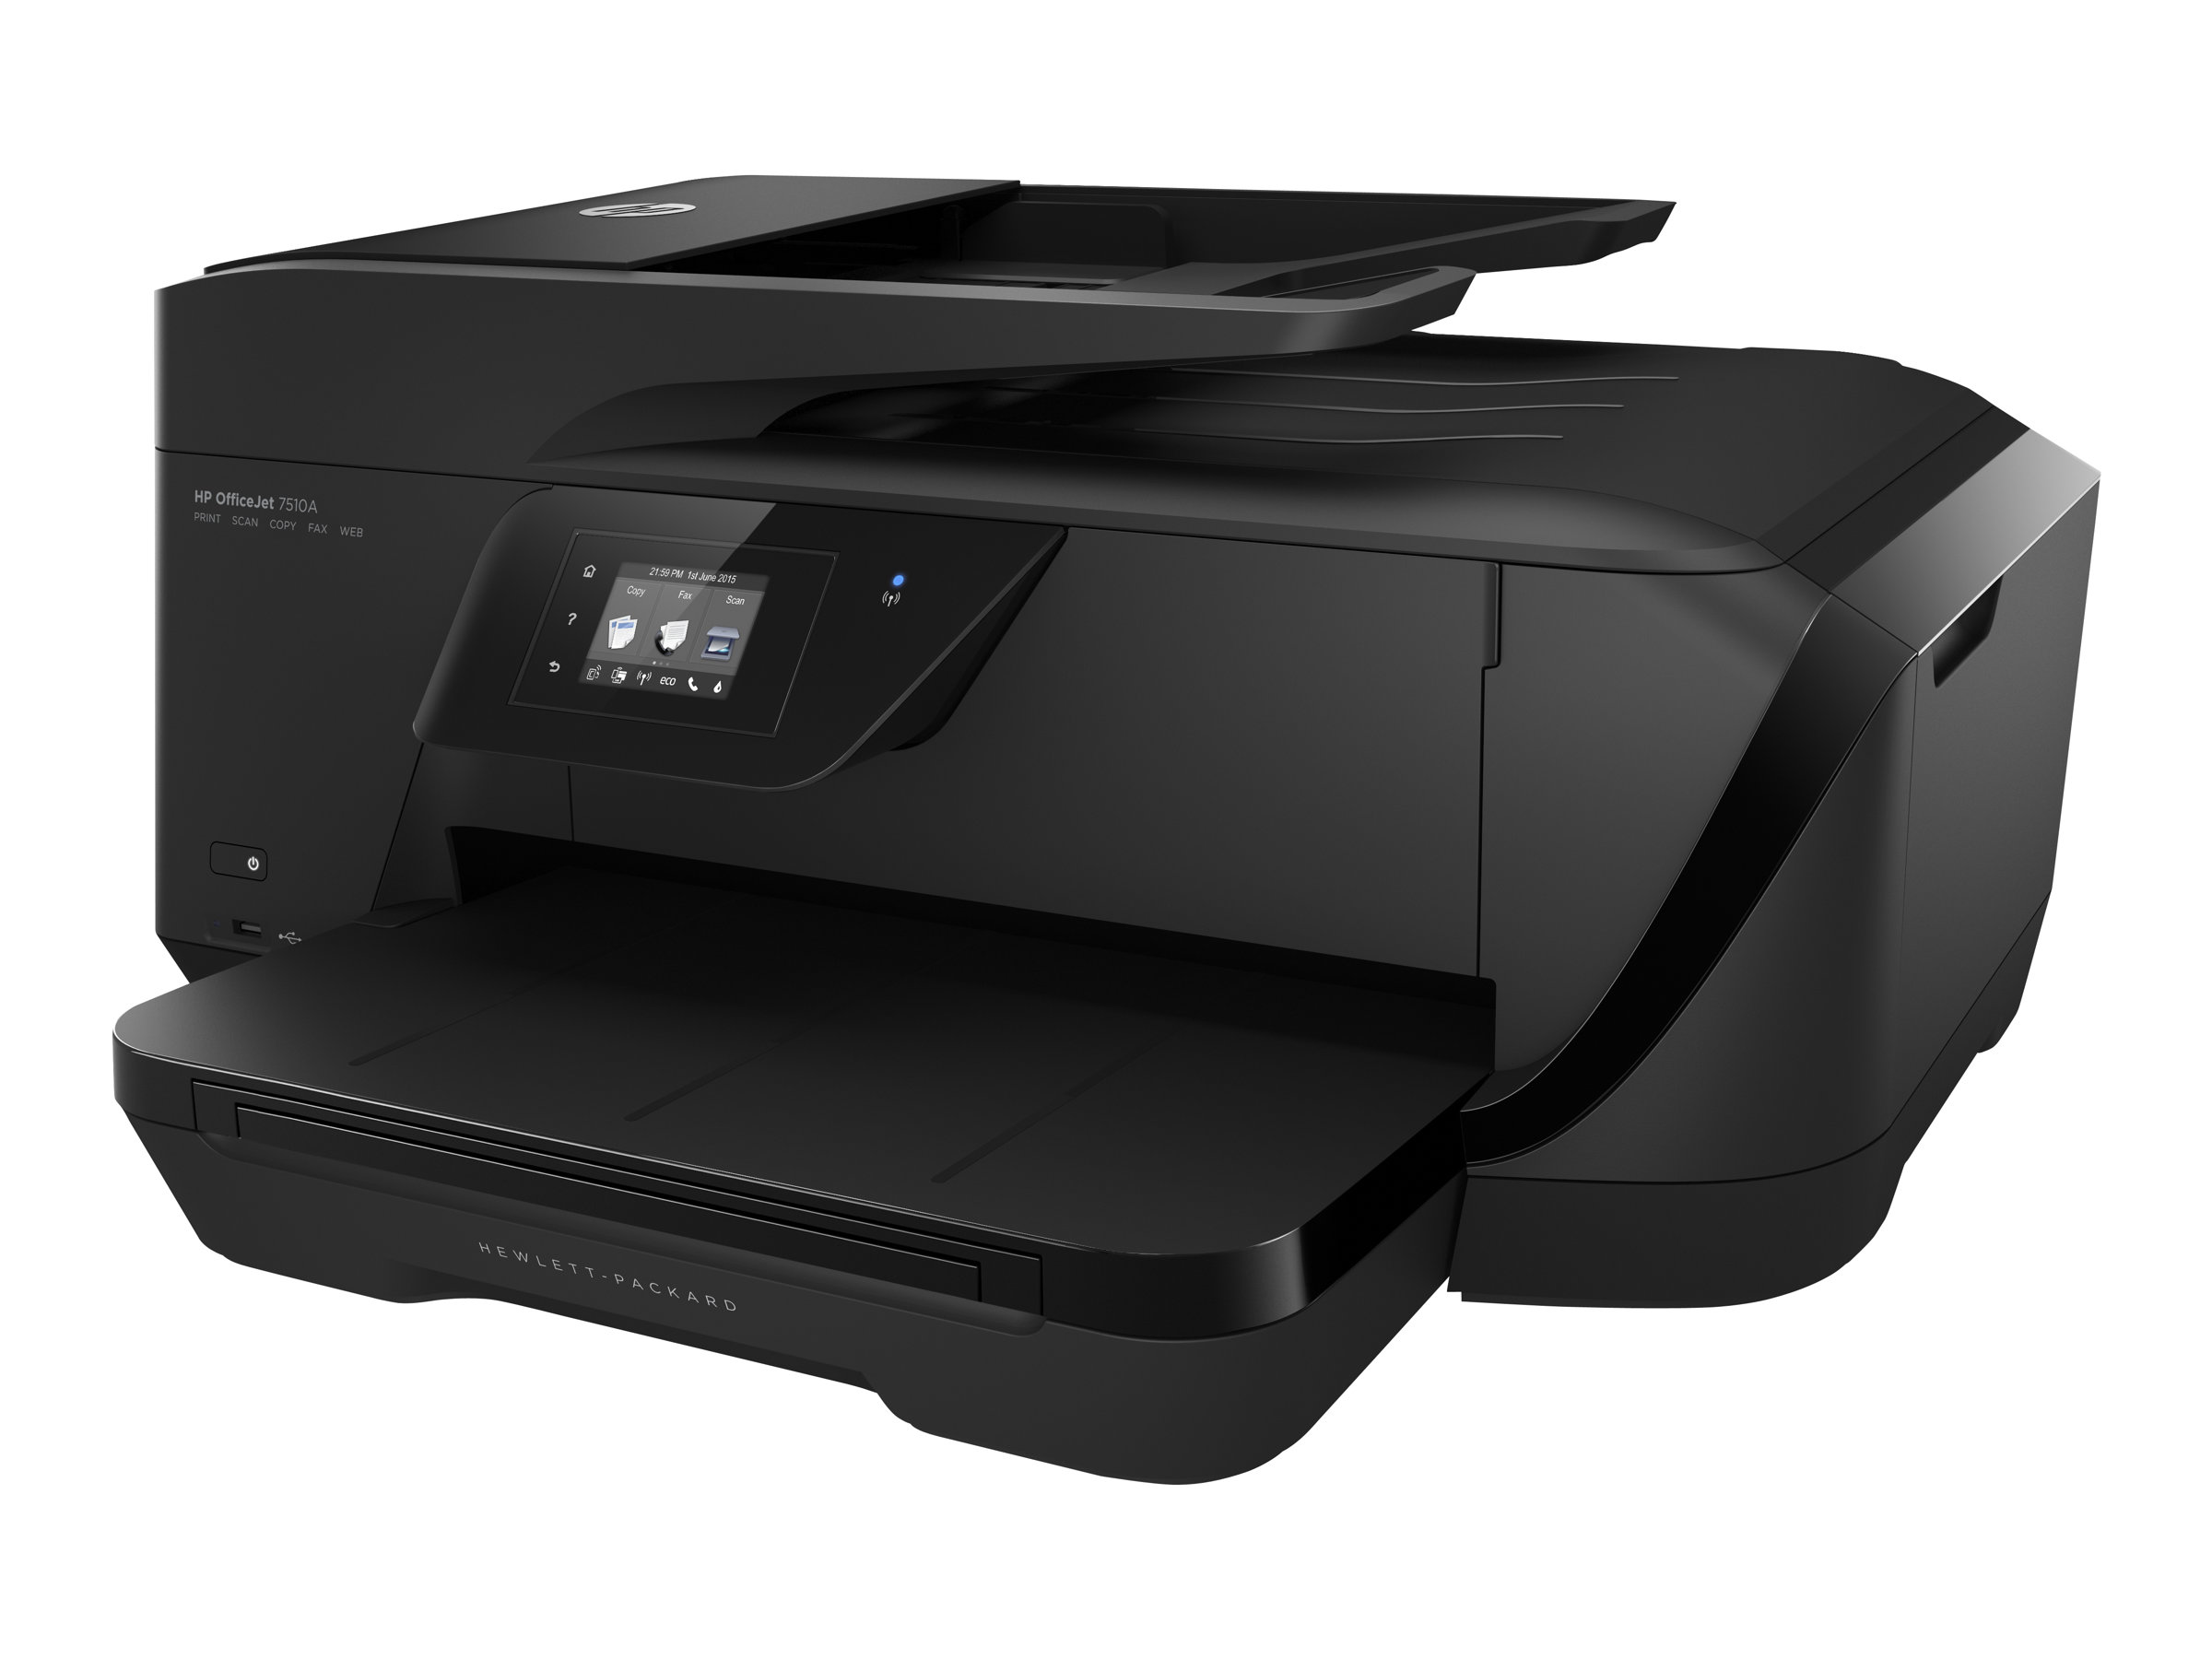 hp officejet 7510 wide format all in one imprimante multifonctions couleur imprimantes jet. Black Bedroom Furniture Sets. Home Design Ideas